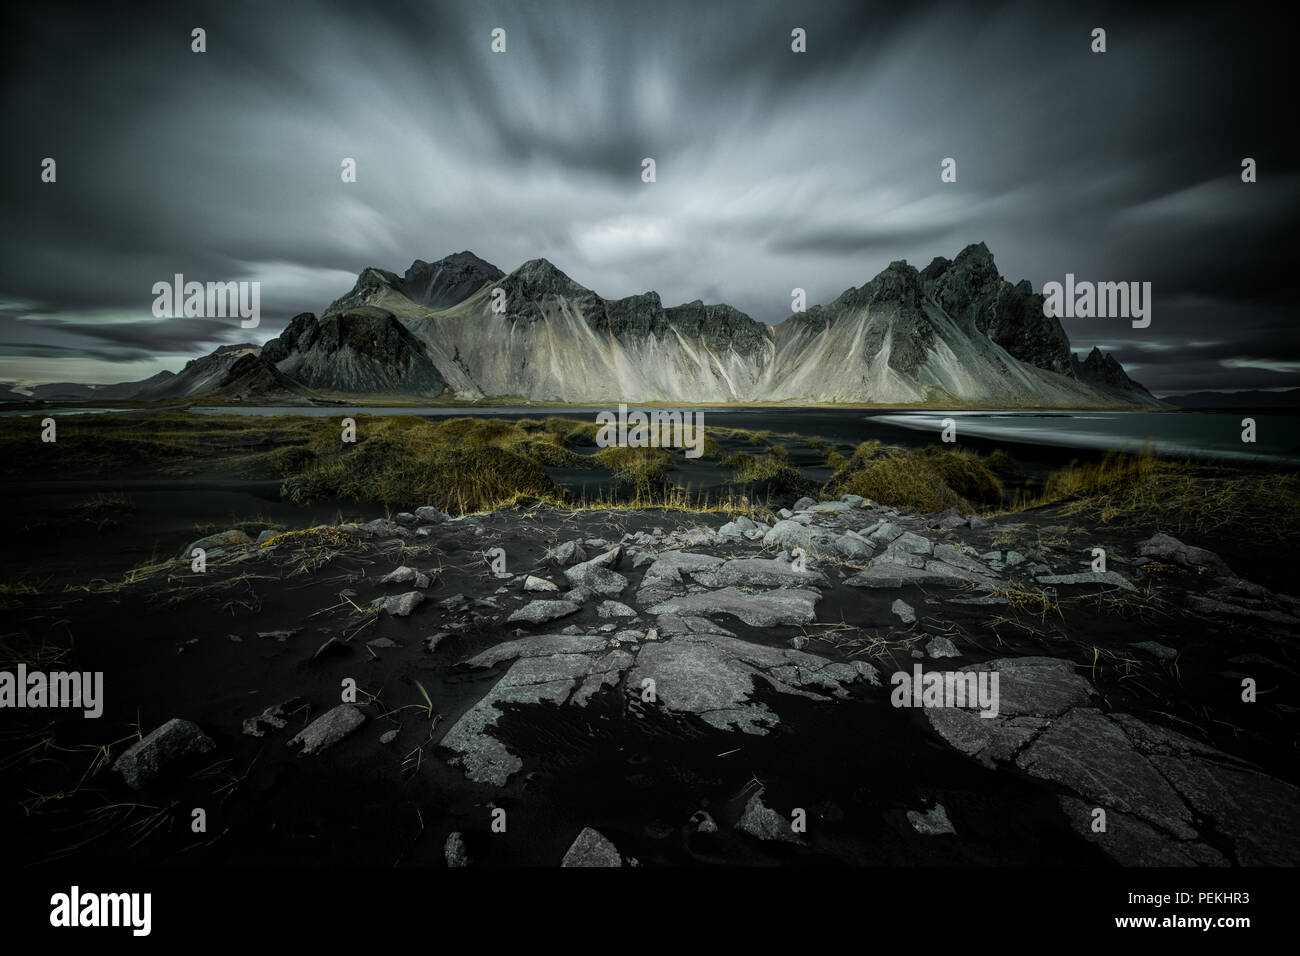 Long Exposure Landscape shot of Vestrahorn mountain range near Hofn, Iceland Stock Photo